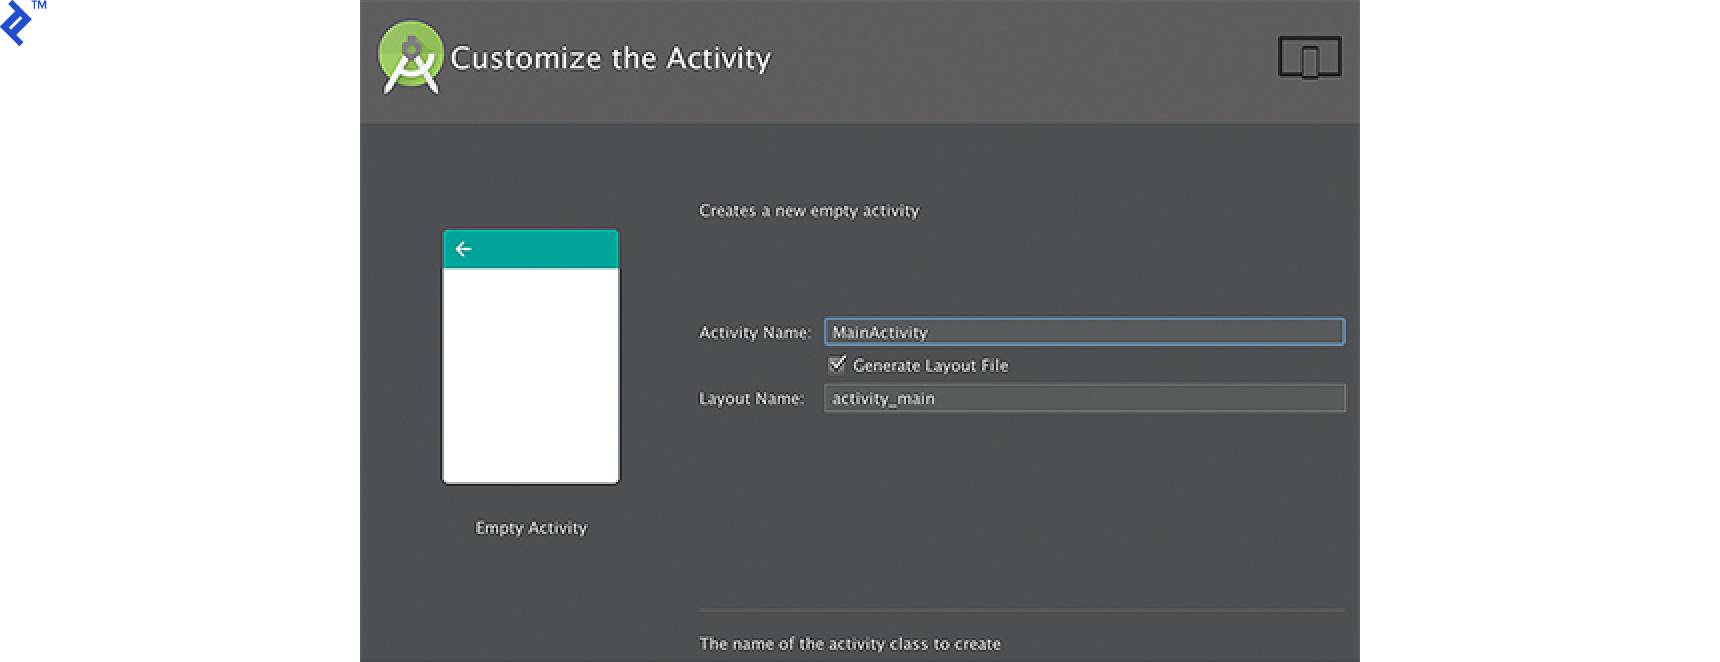 Screen shot: Customize the Activity screen